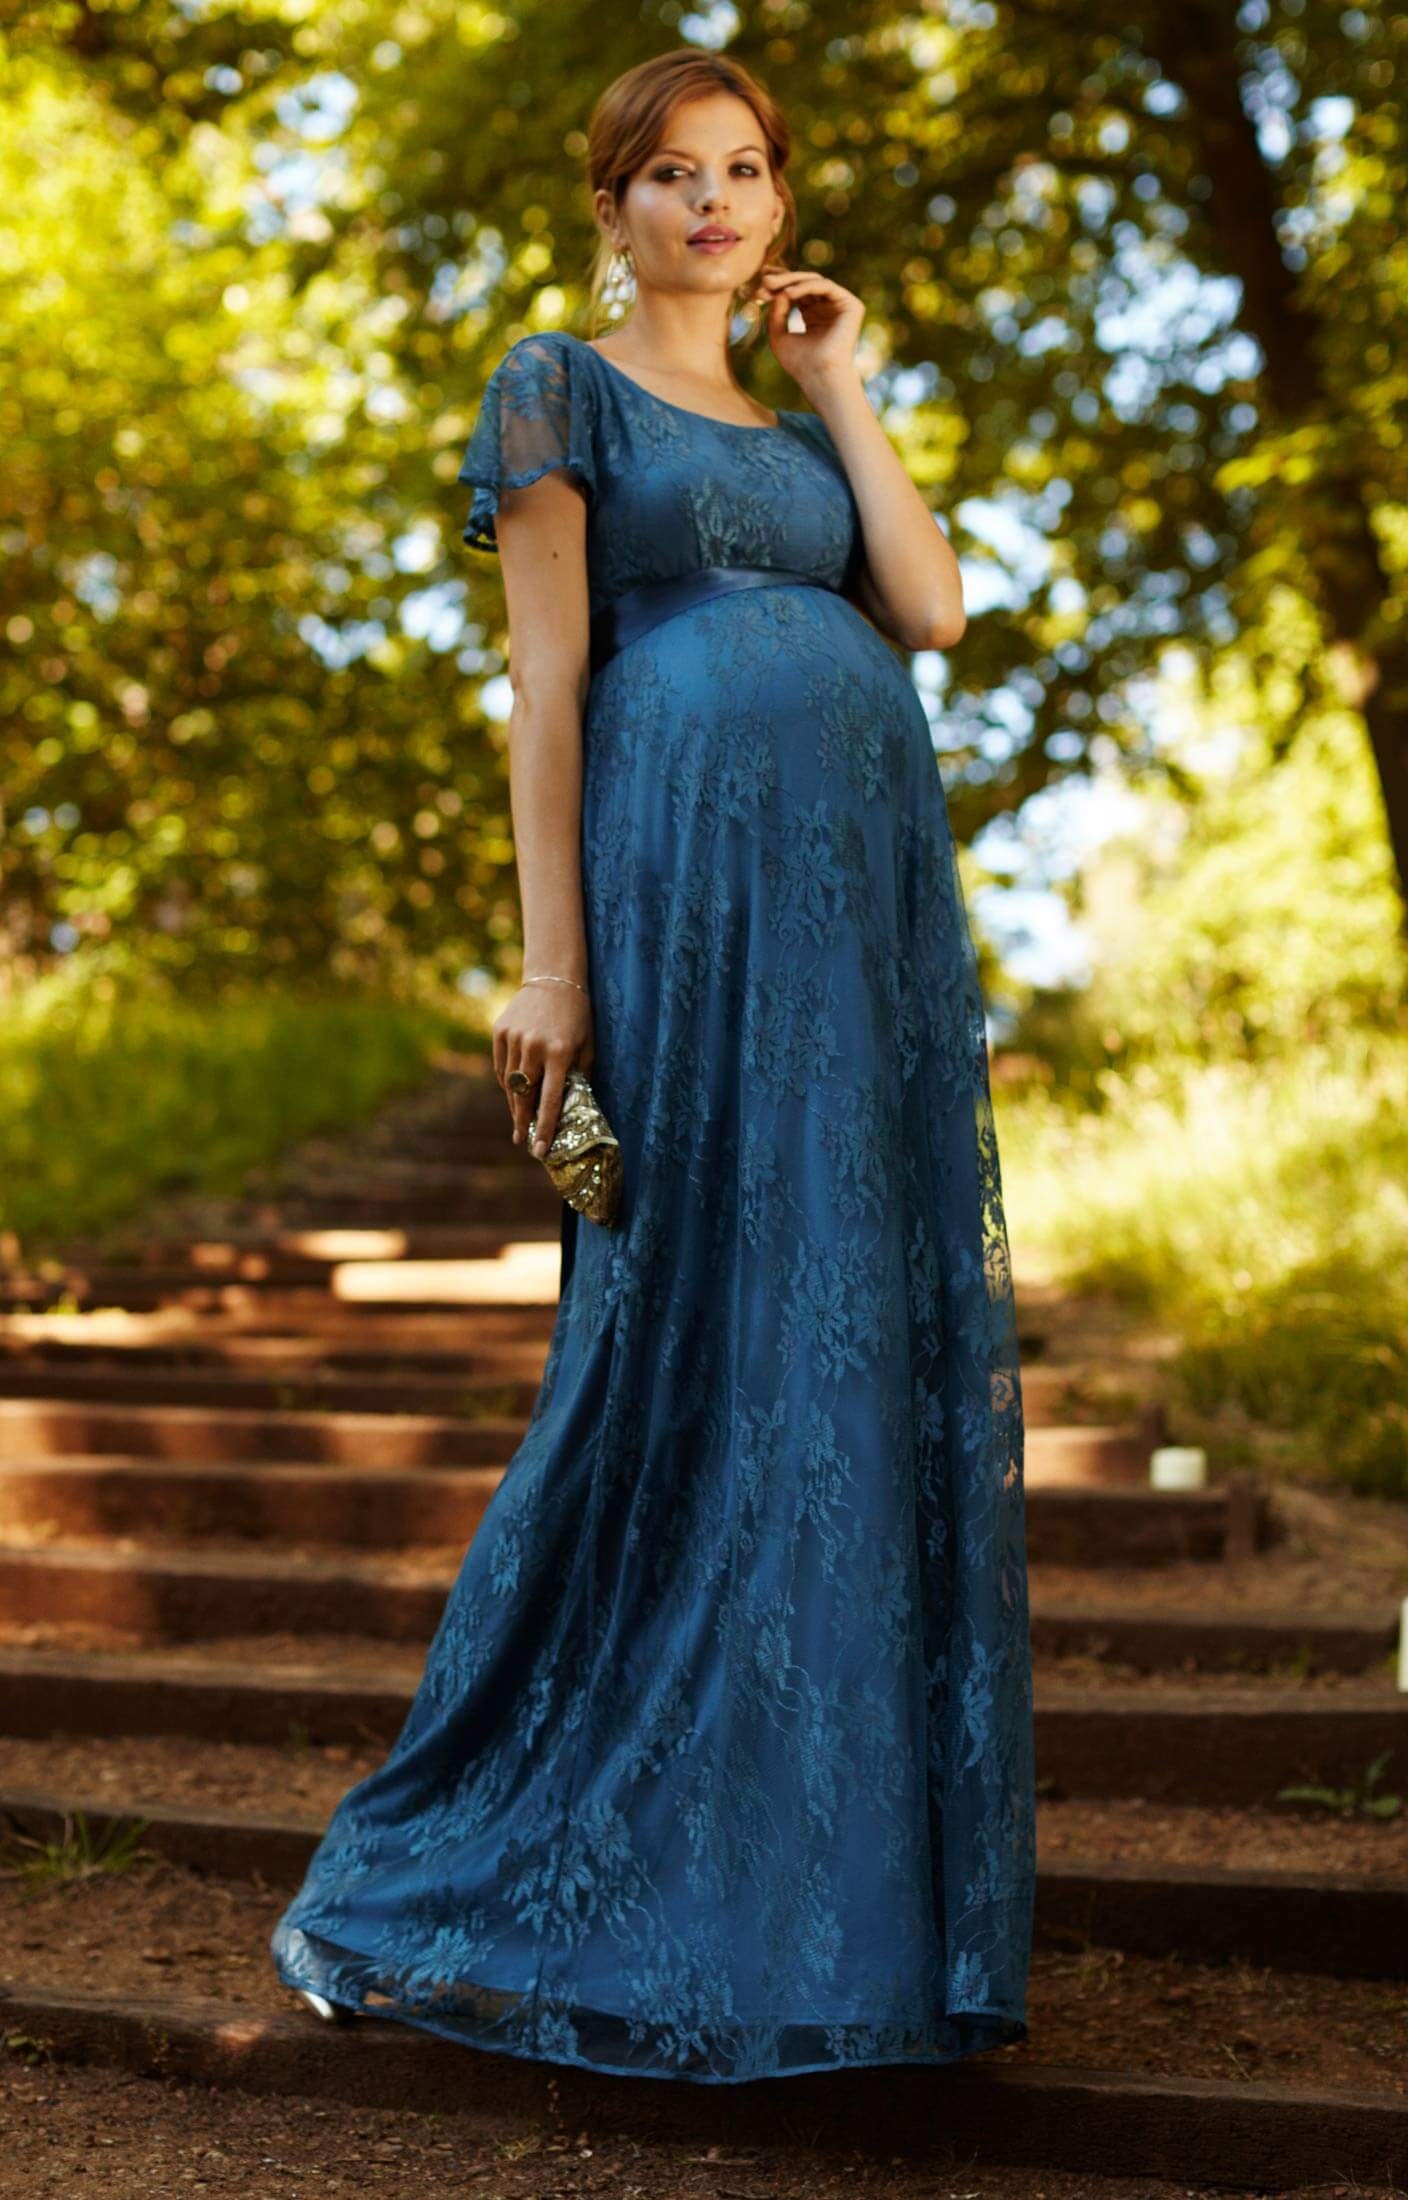 Elsa maternity gown long lagoon blue maternity wedding dresses elsa maternity gown long lagoon blue by tiffany rose ombrellifo Image collections